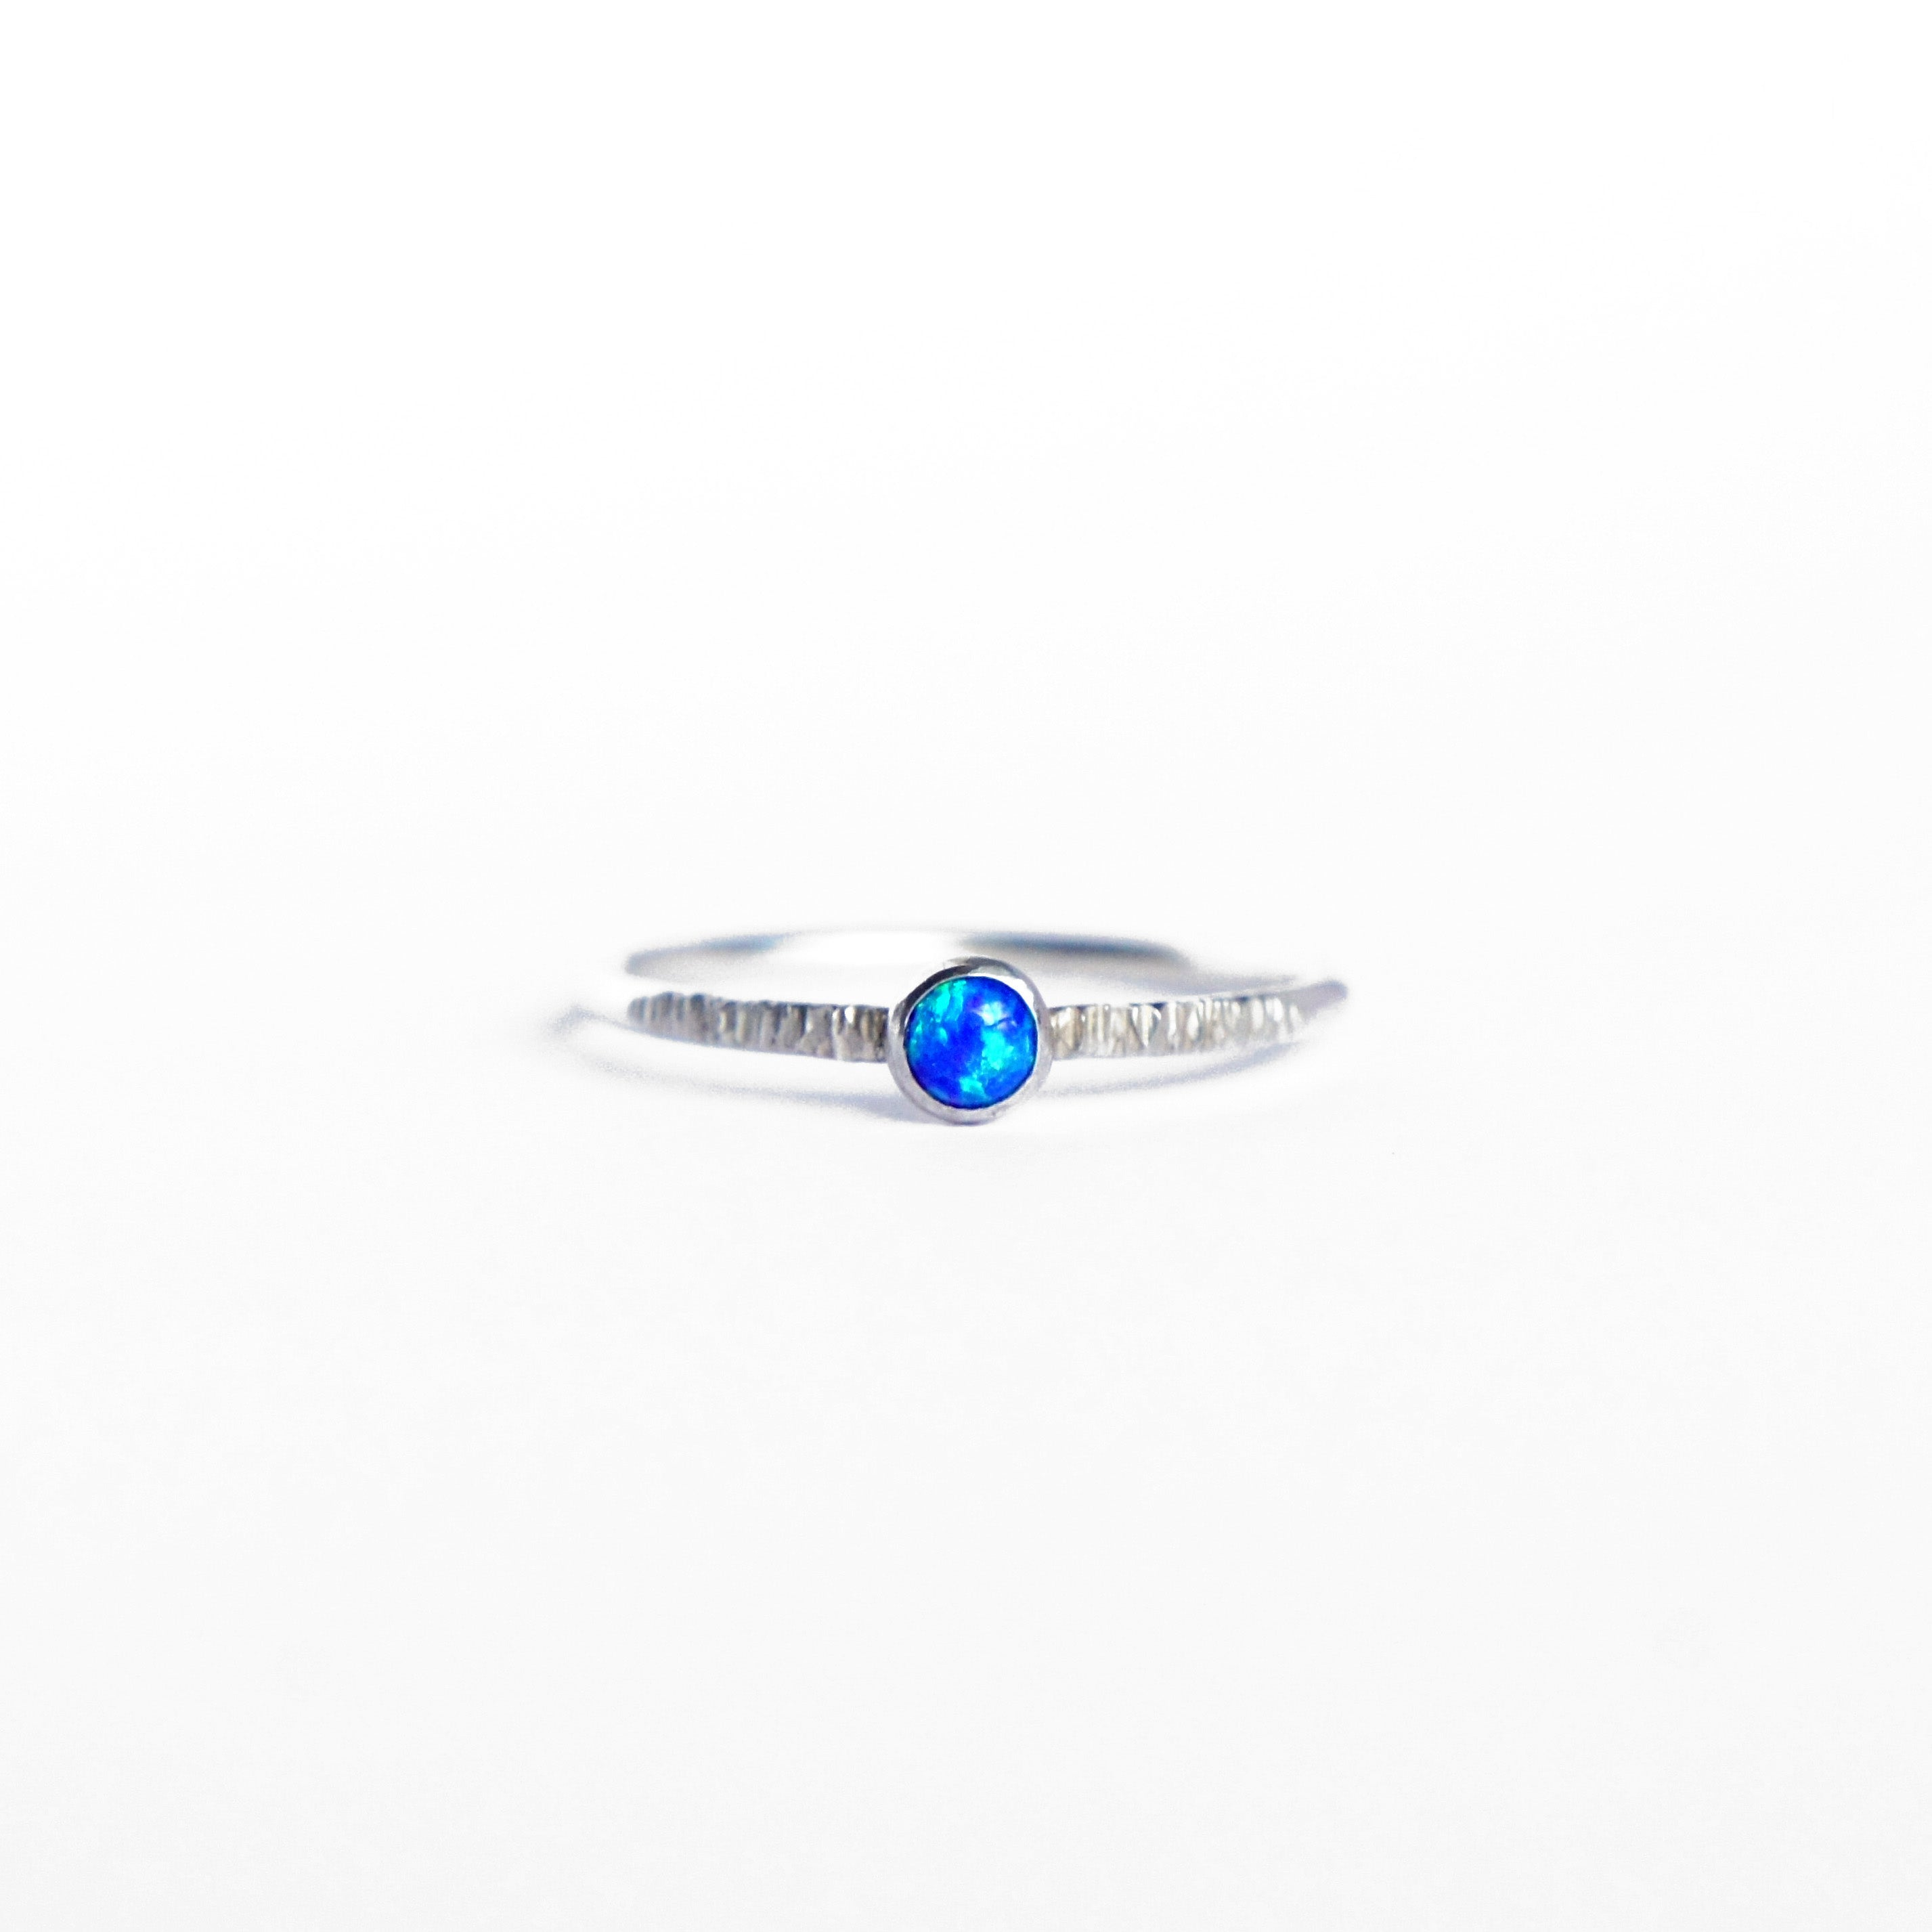 Emily Eliza Arlotte Handcrafted Fine Jewellery - Sterling Silver Earth Blue Opal Dainty Galaxy Ring